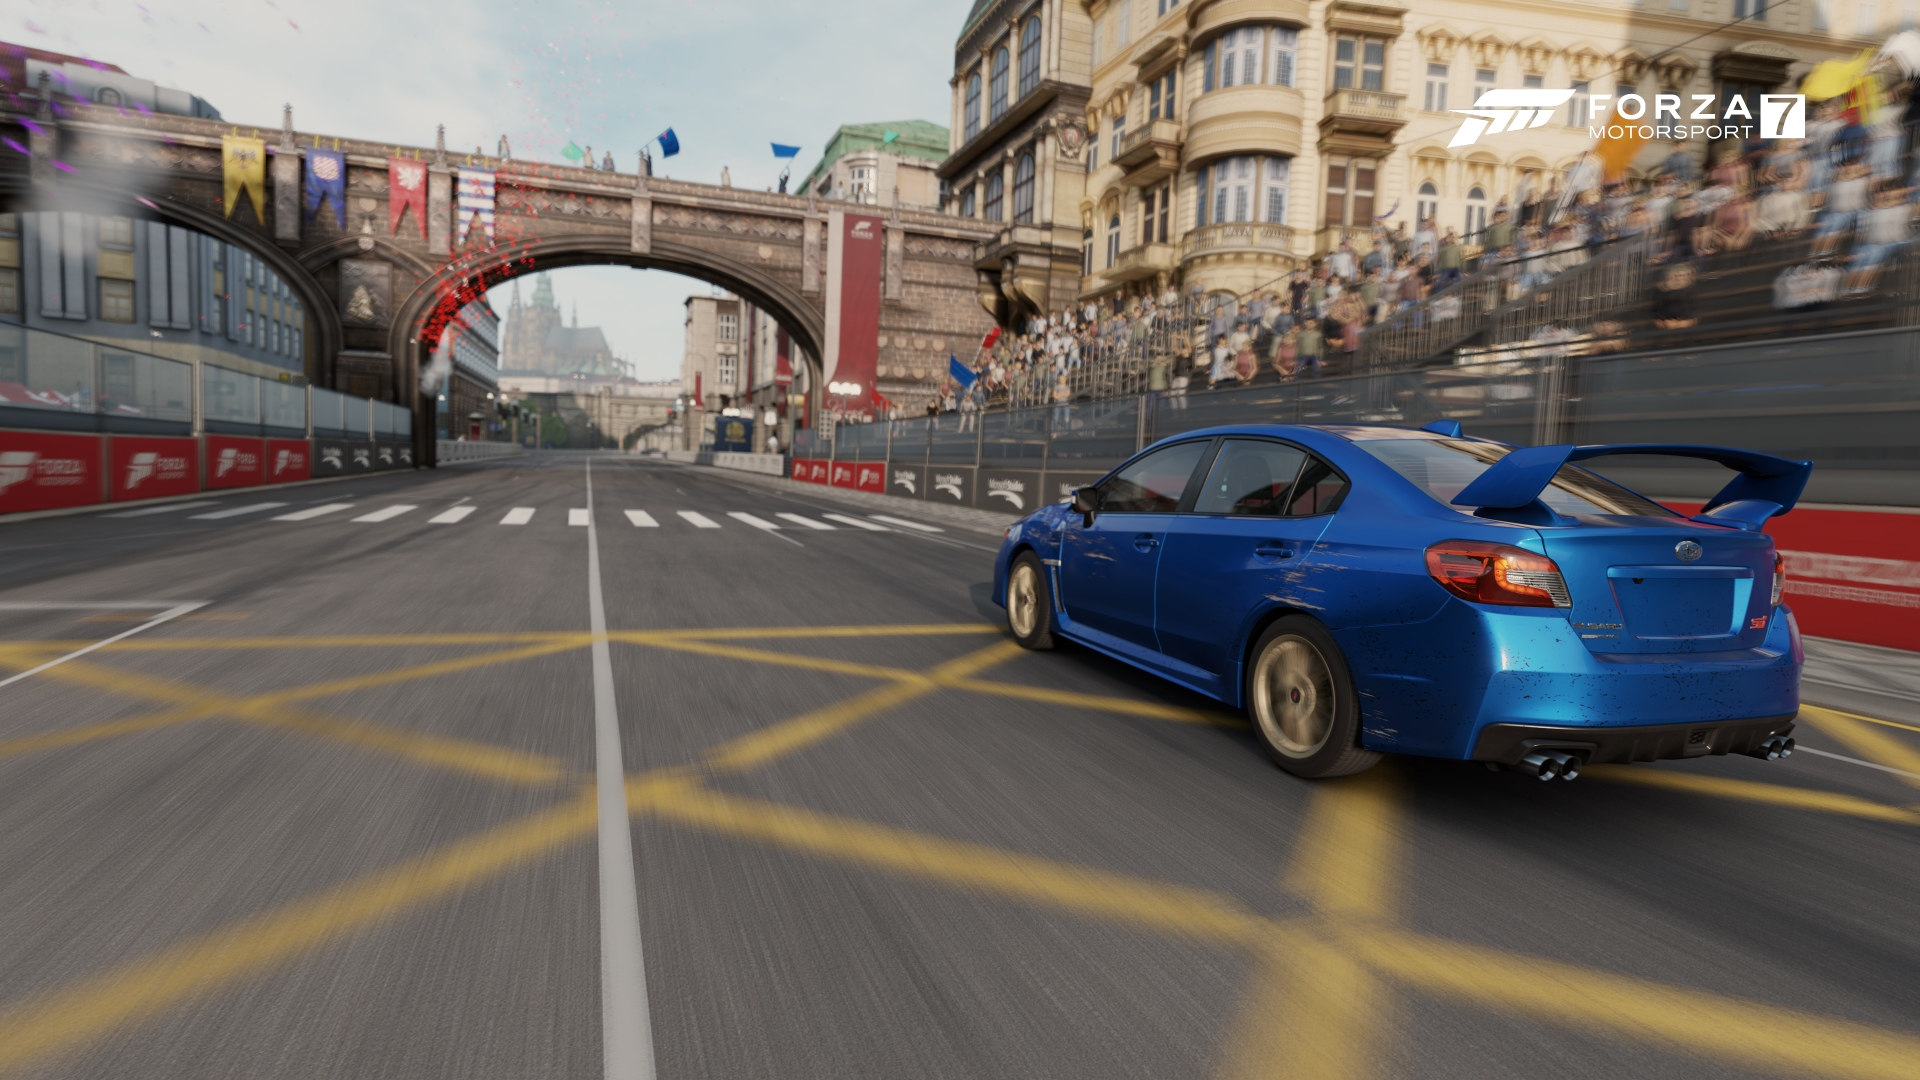 Forza Motorsport 7 Review: What Could Have Been | Shacknews